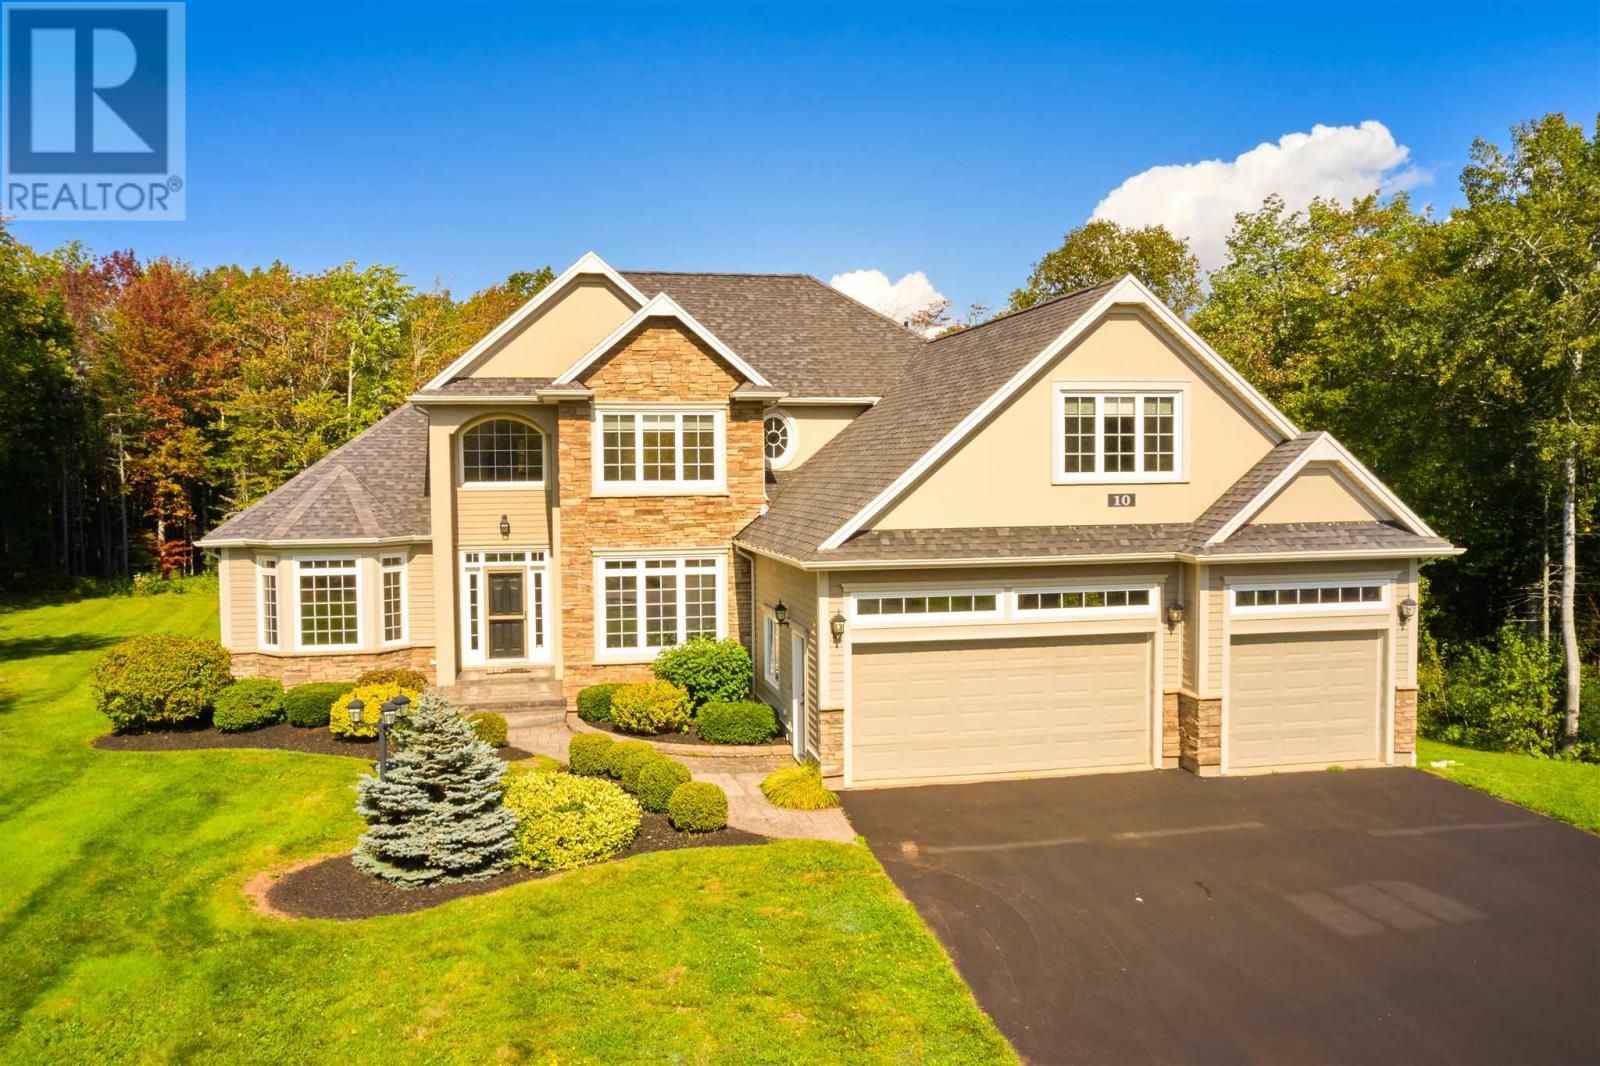 Main Photo: 10 Callaway Close in Stratford: House for sale : MLS®# 202124517